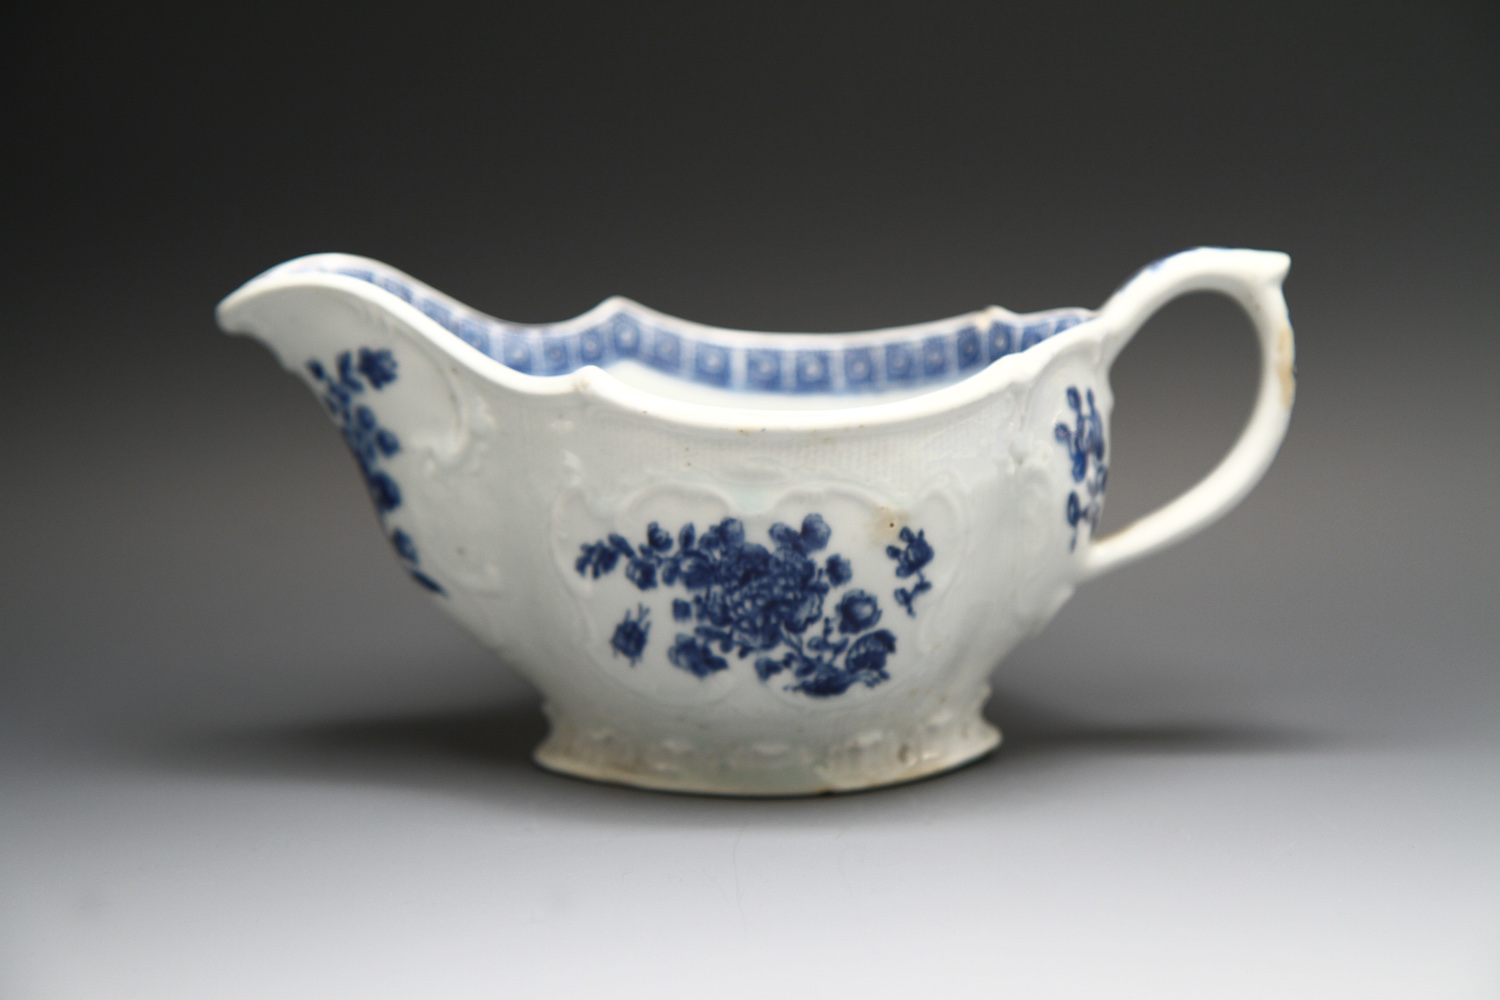 1123 - A rare Bow sauceboat possibly copying Liverpool, c 1765-70